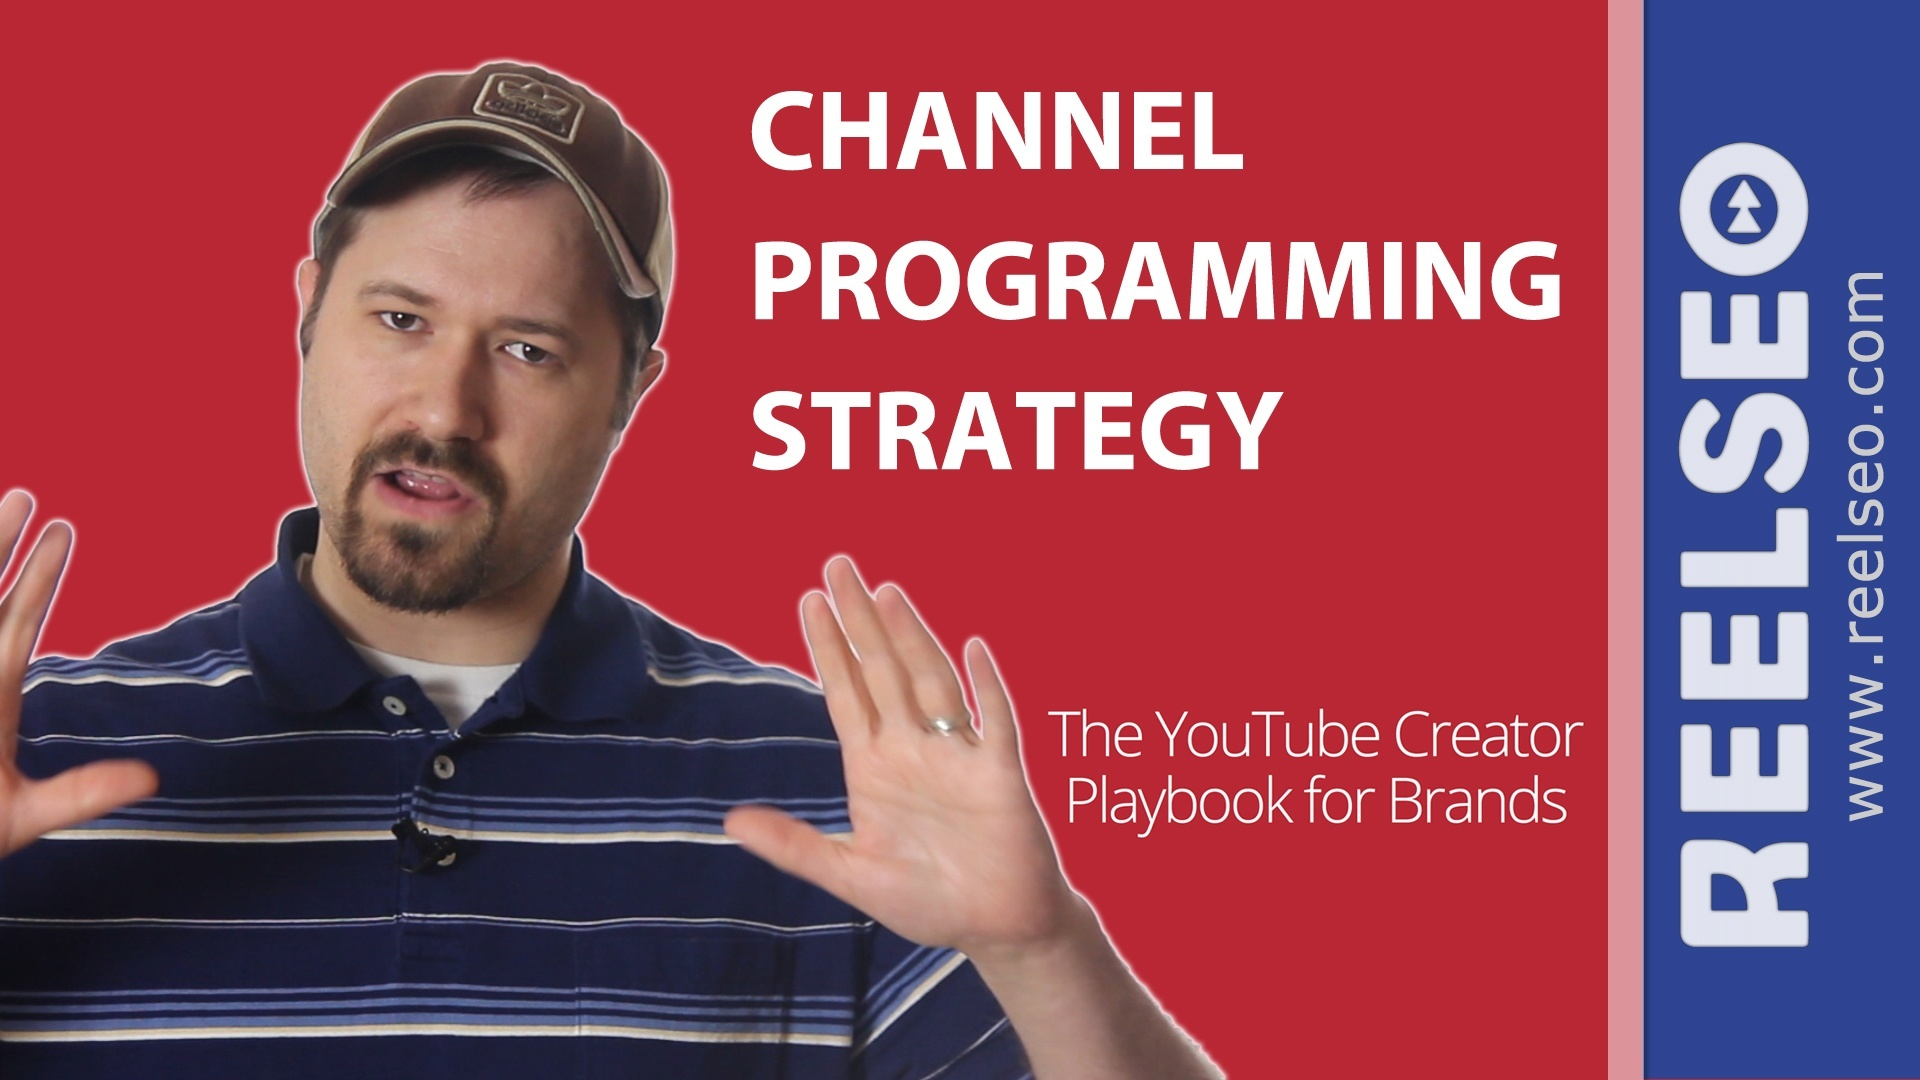 How-To Develop a YouTube Programming Strategy